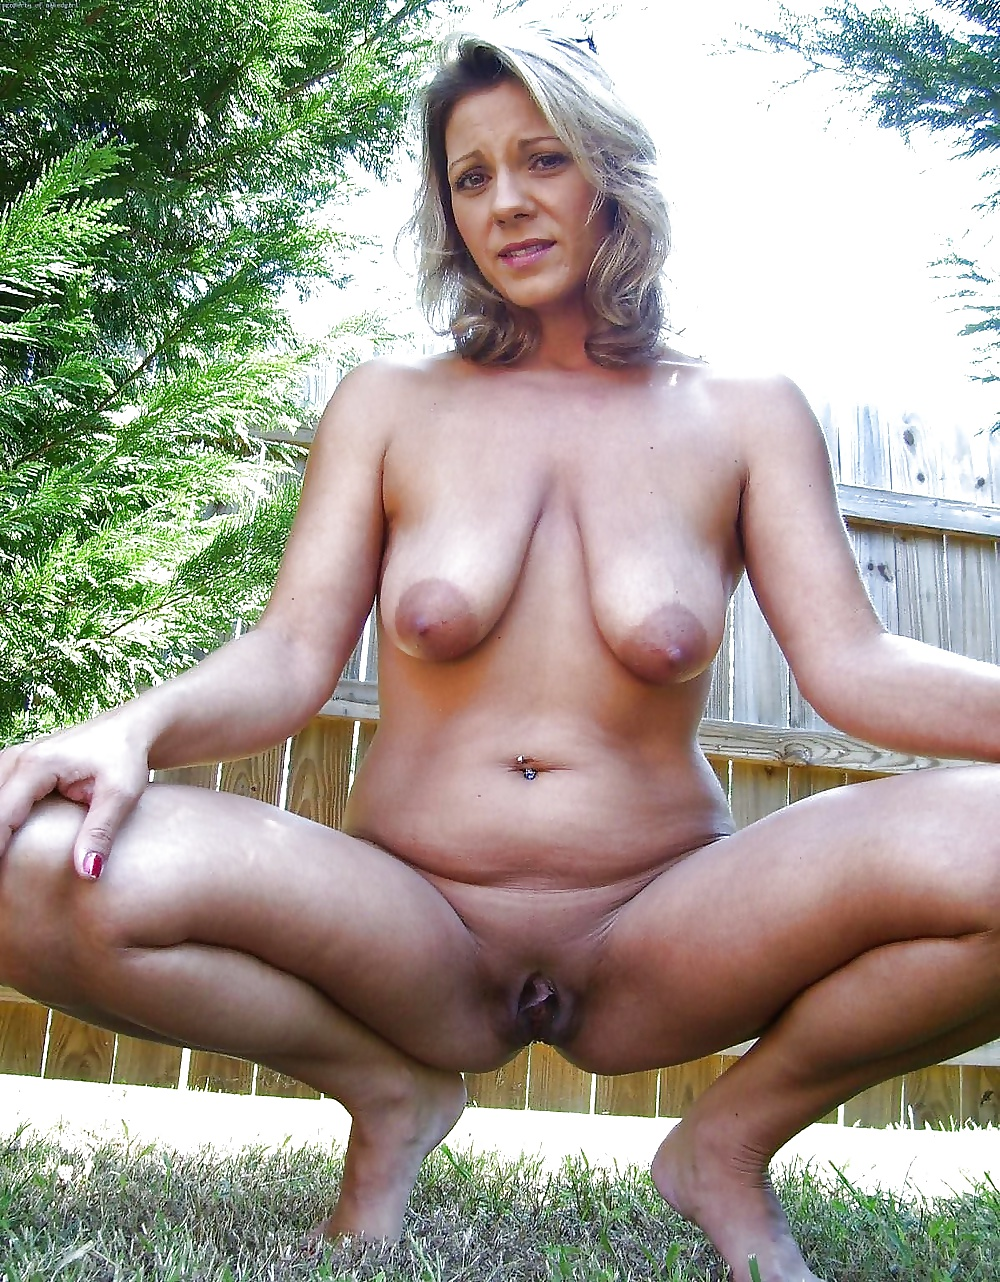 Outdoor granny pic, free women gallery